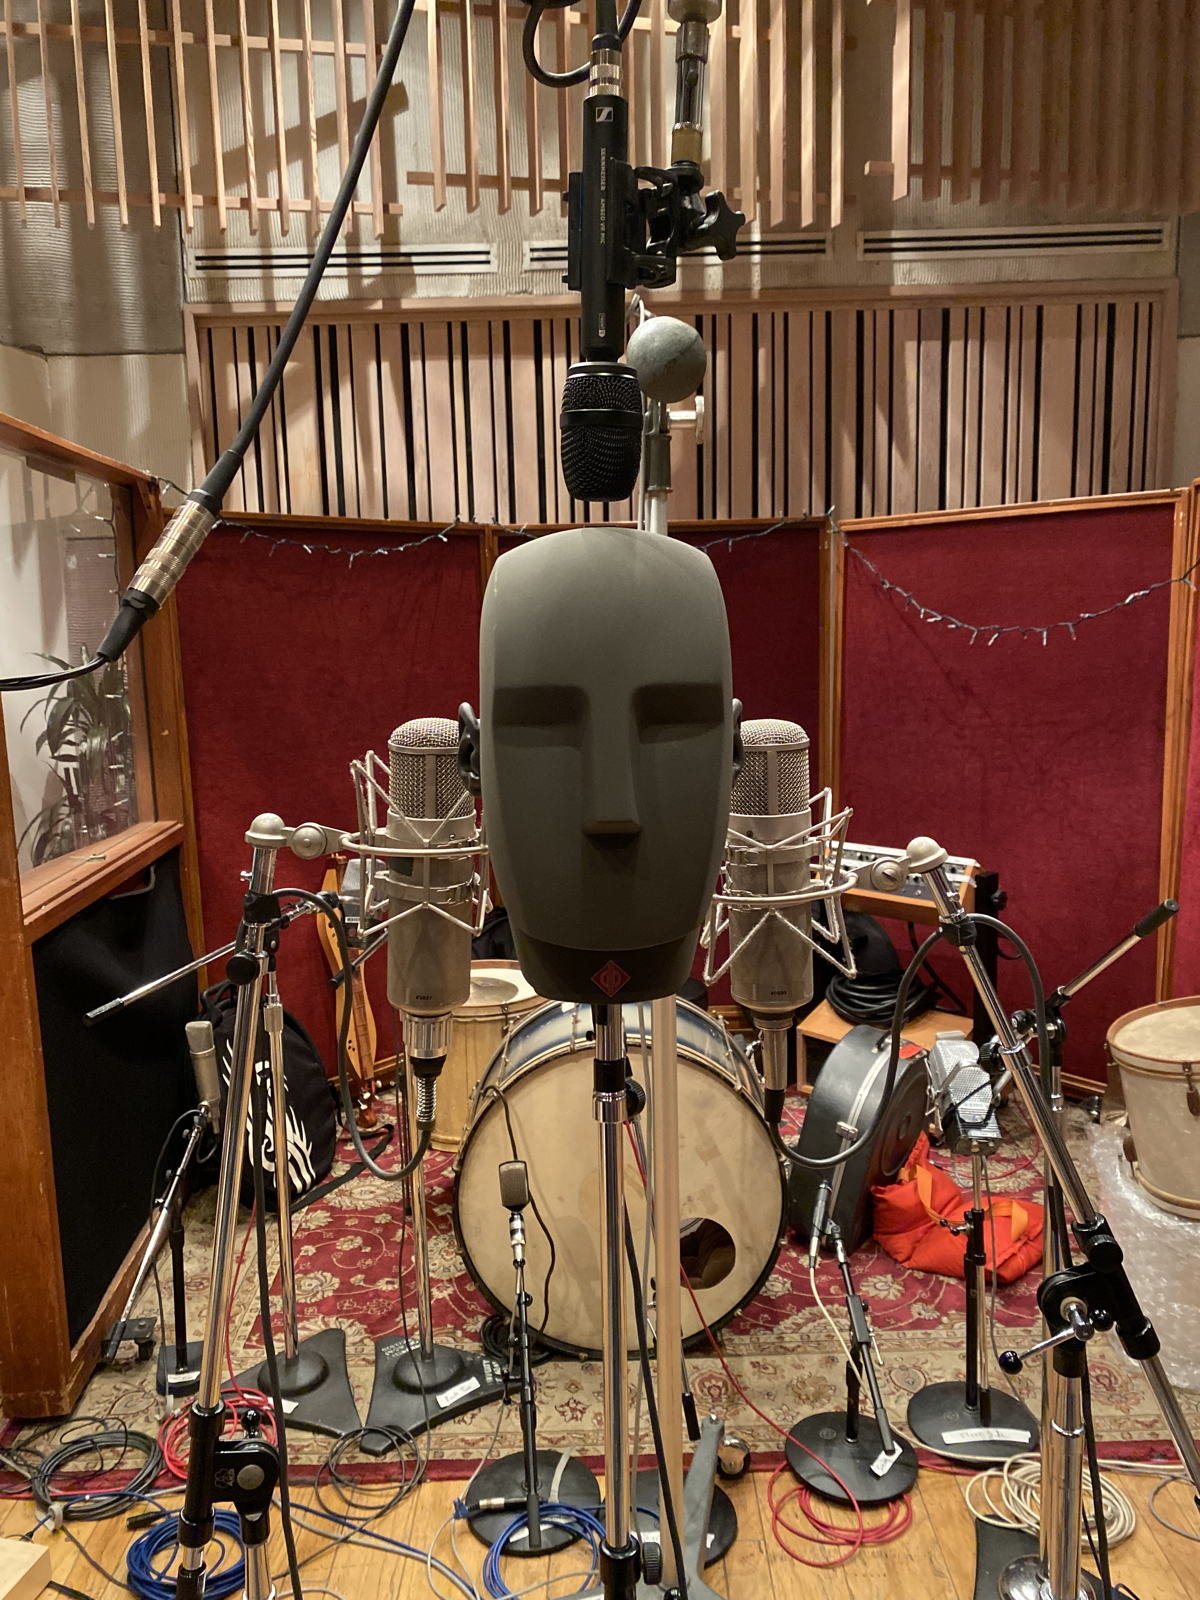 During the recording session at Henson Studio D, Michael Marquart deployed a Neumann KU 100 binaural head, flanked by two vintage Neumann U 47 tube microphones. The AMBEO VR Mic was placed above.  Photo courtesy of Michael Marquart